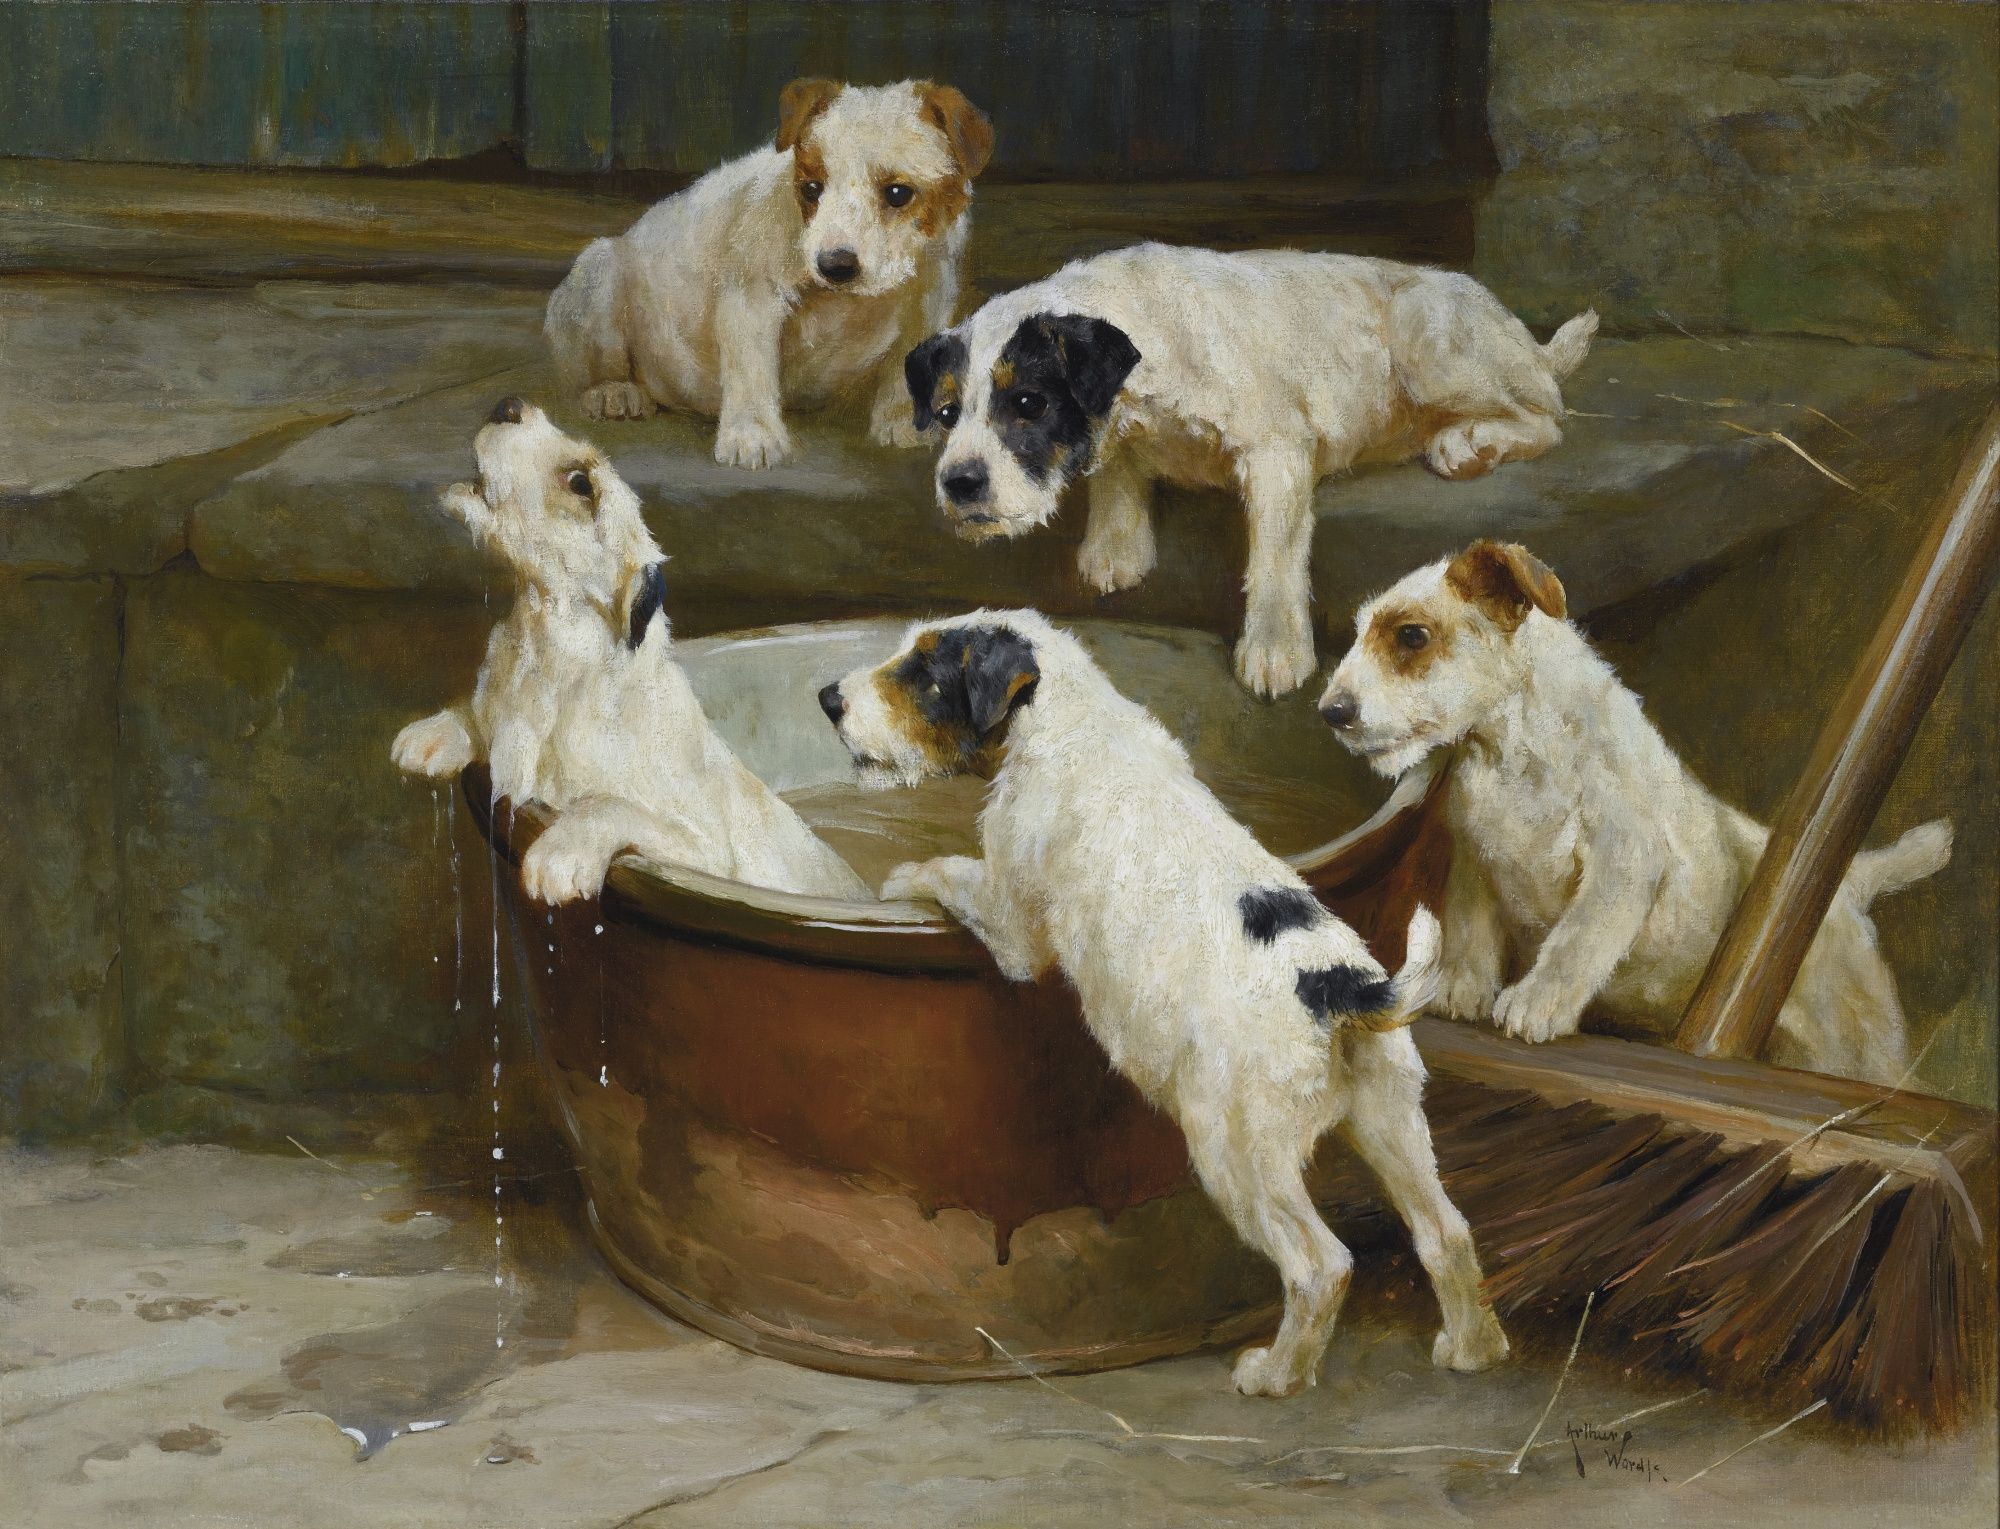 FOX TERRIER TOTTERIDGE 11 DOGS PAINTING BY ARTHUR WARDLE REPRO